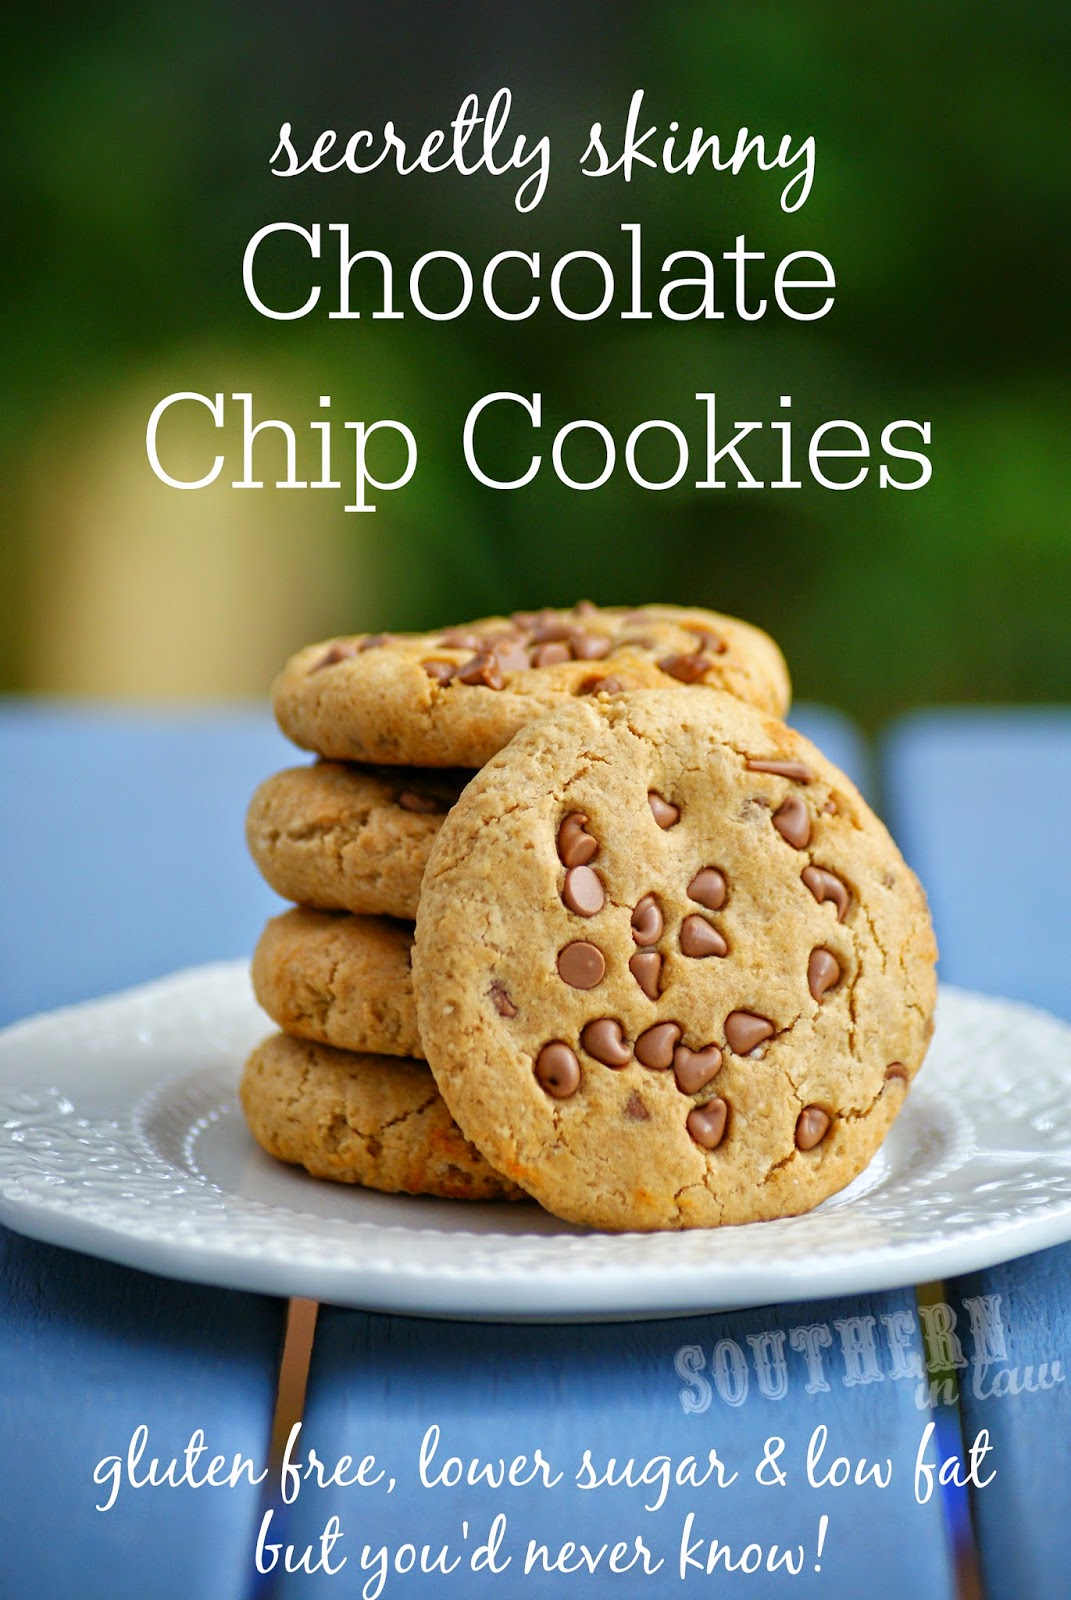 Secretly Skinny Chocolate Chip Cookies Recipe - gluten free, low fat, low sugar, healthy